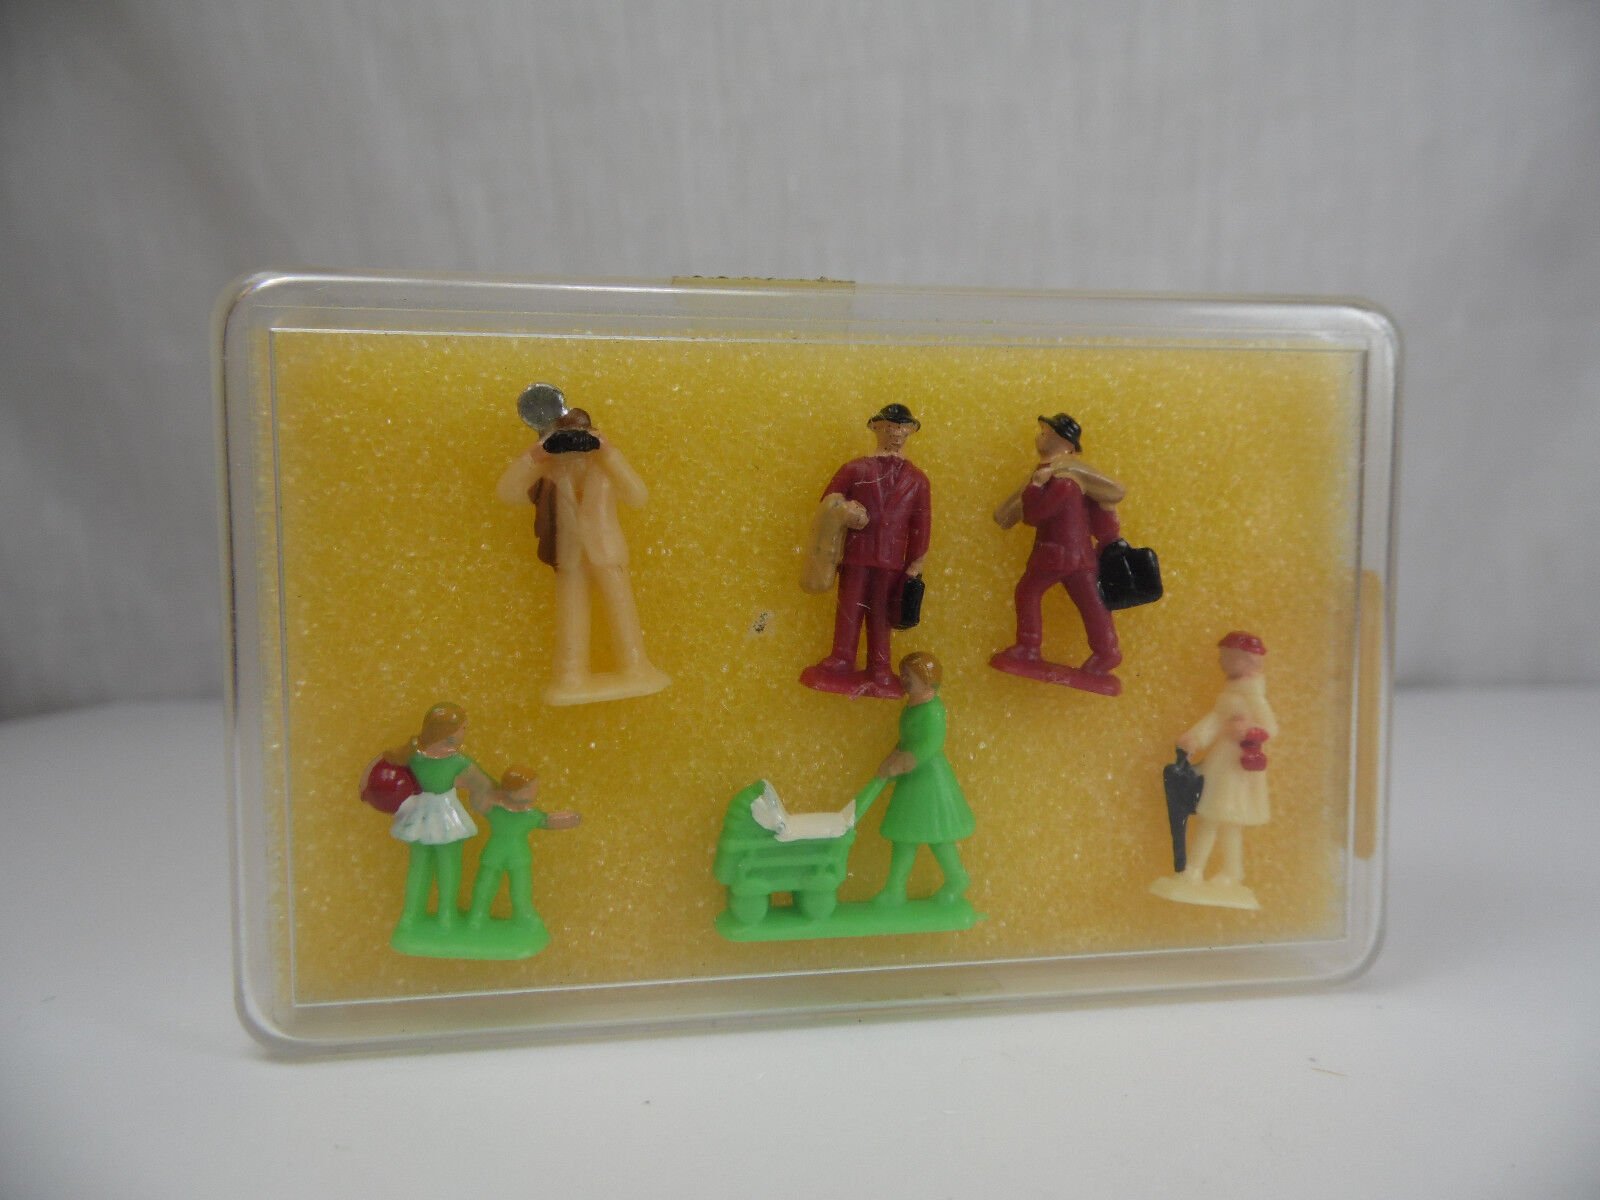 H1082, Old kipri Figurines Set MINT BOX 1 87 H0 - 00 6530 Plastic Figures 60er